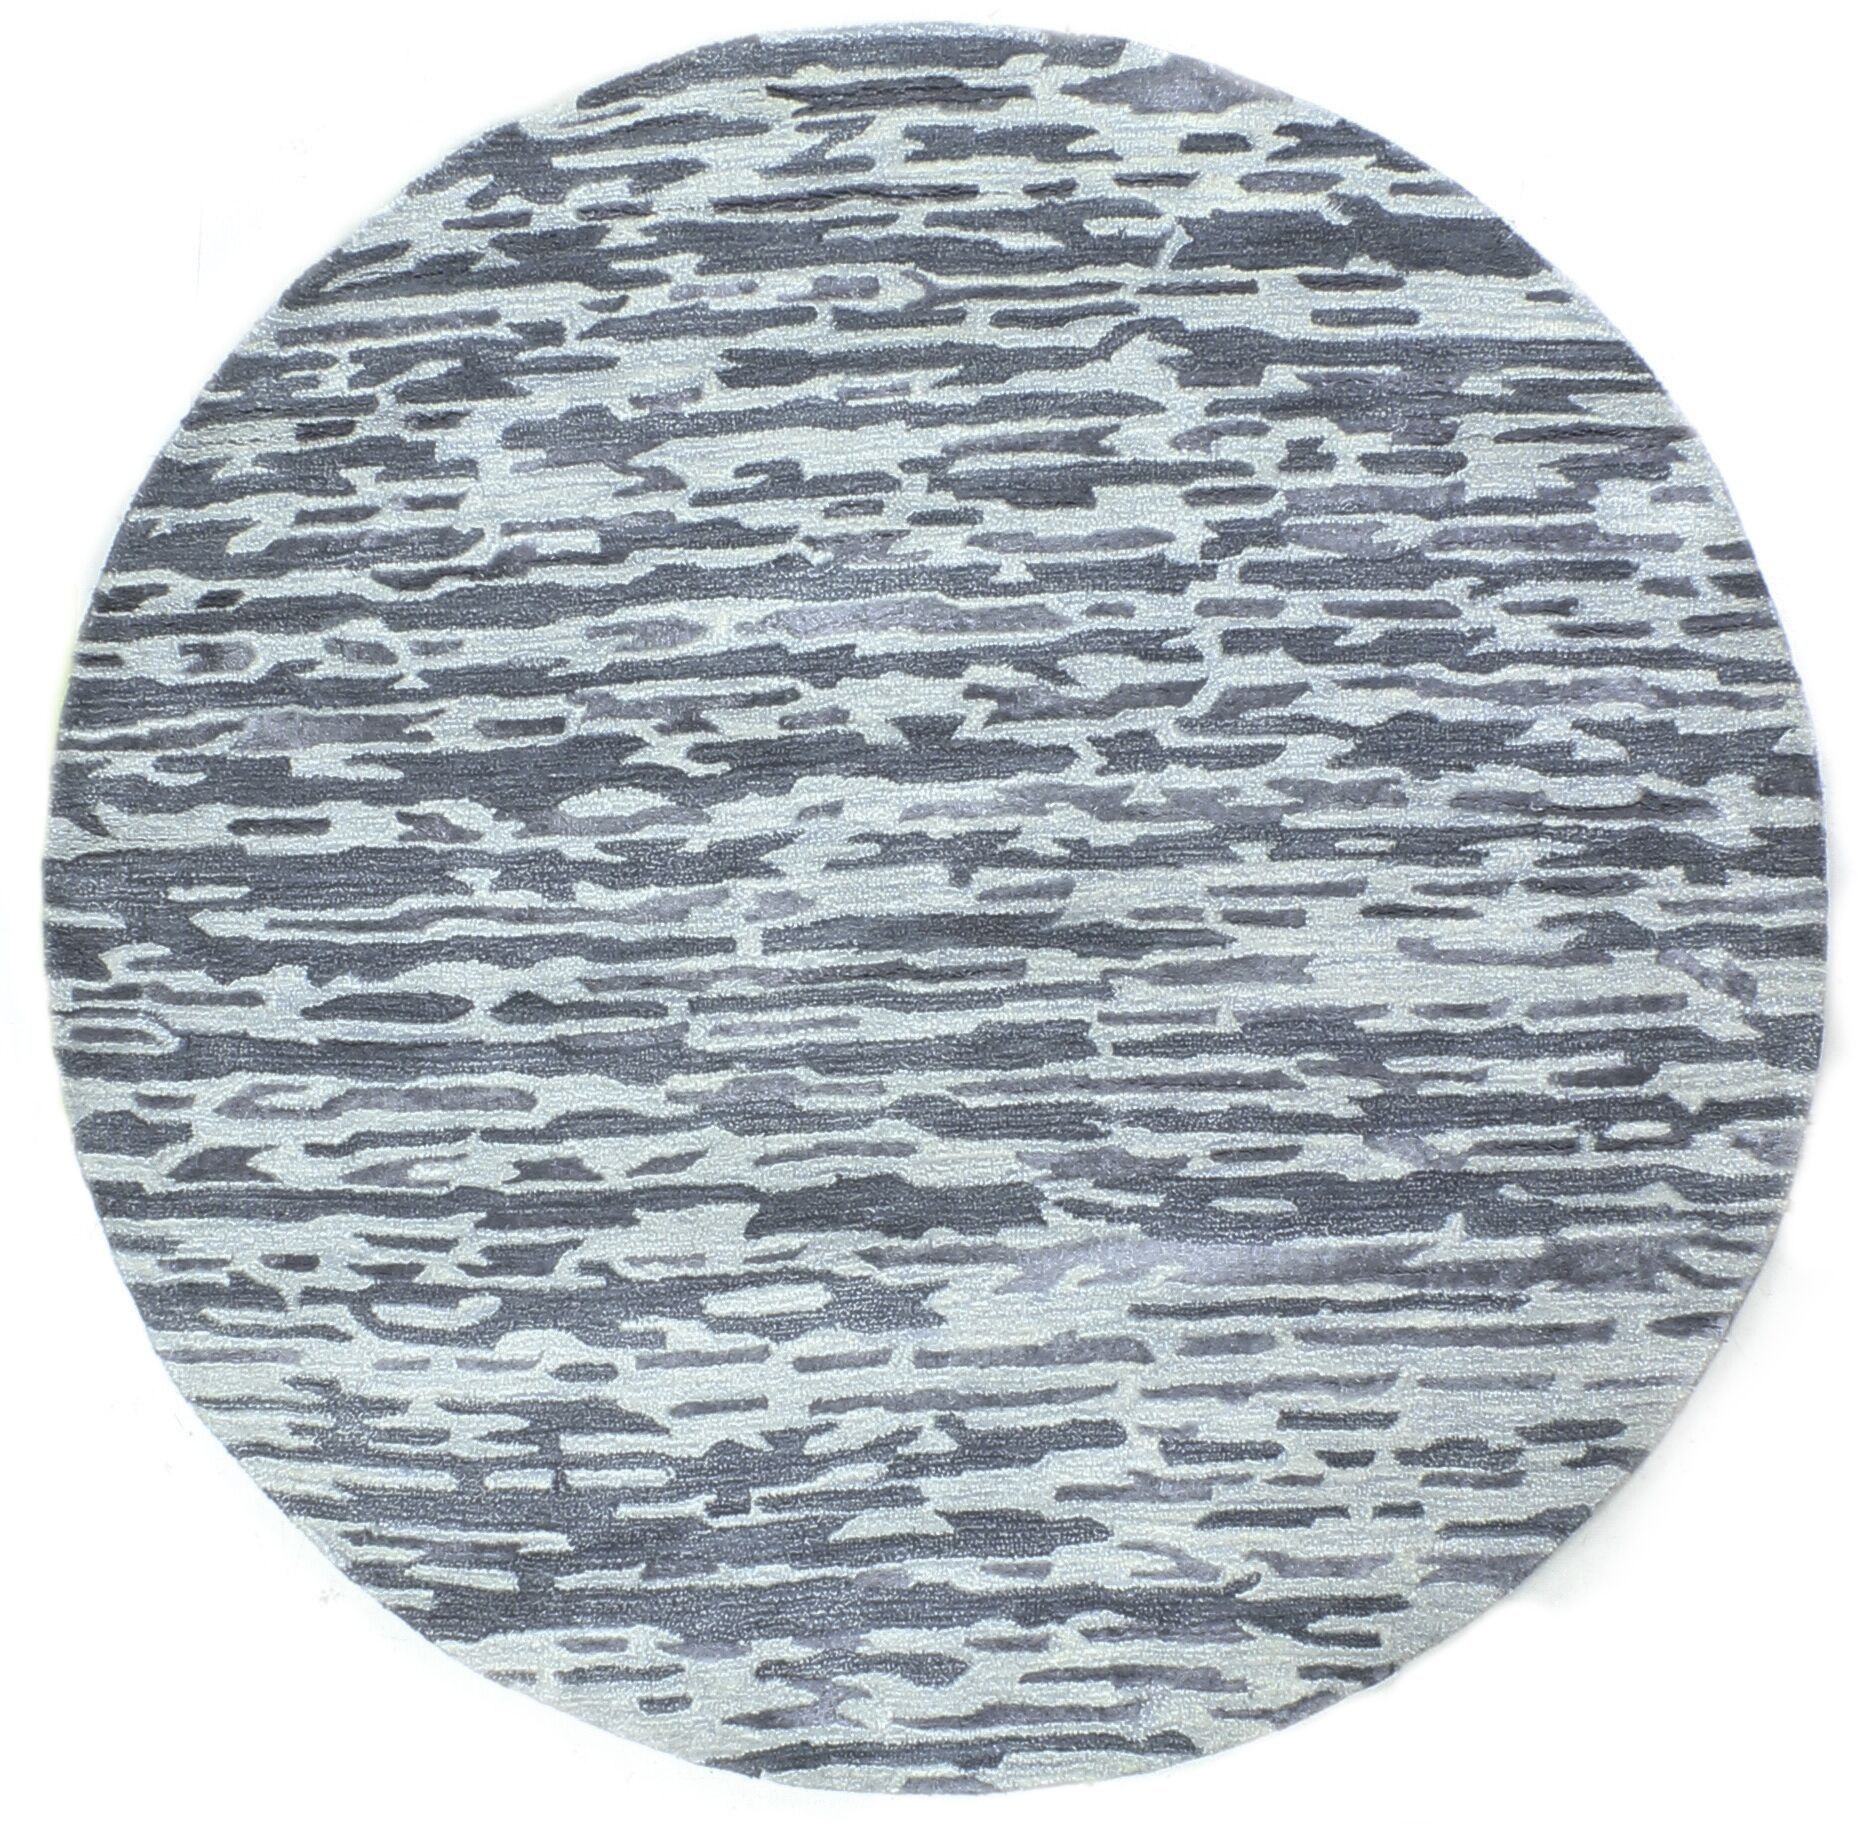 Galle Hand-Tufted Blue Area Rug Rug Size: Round 6'